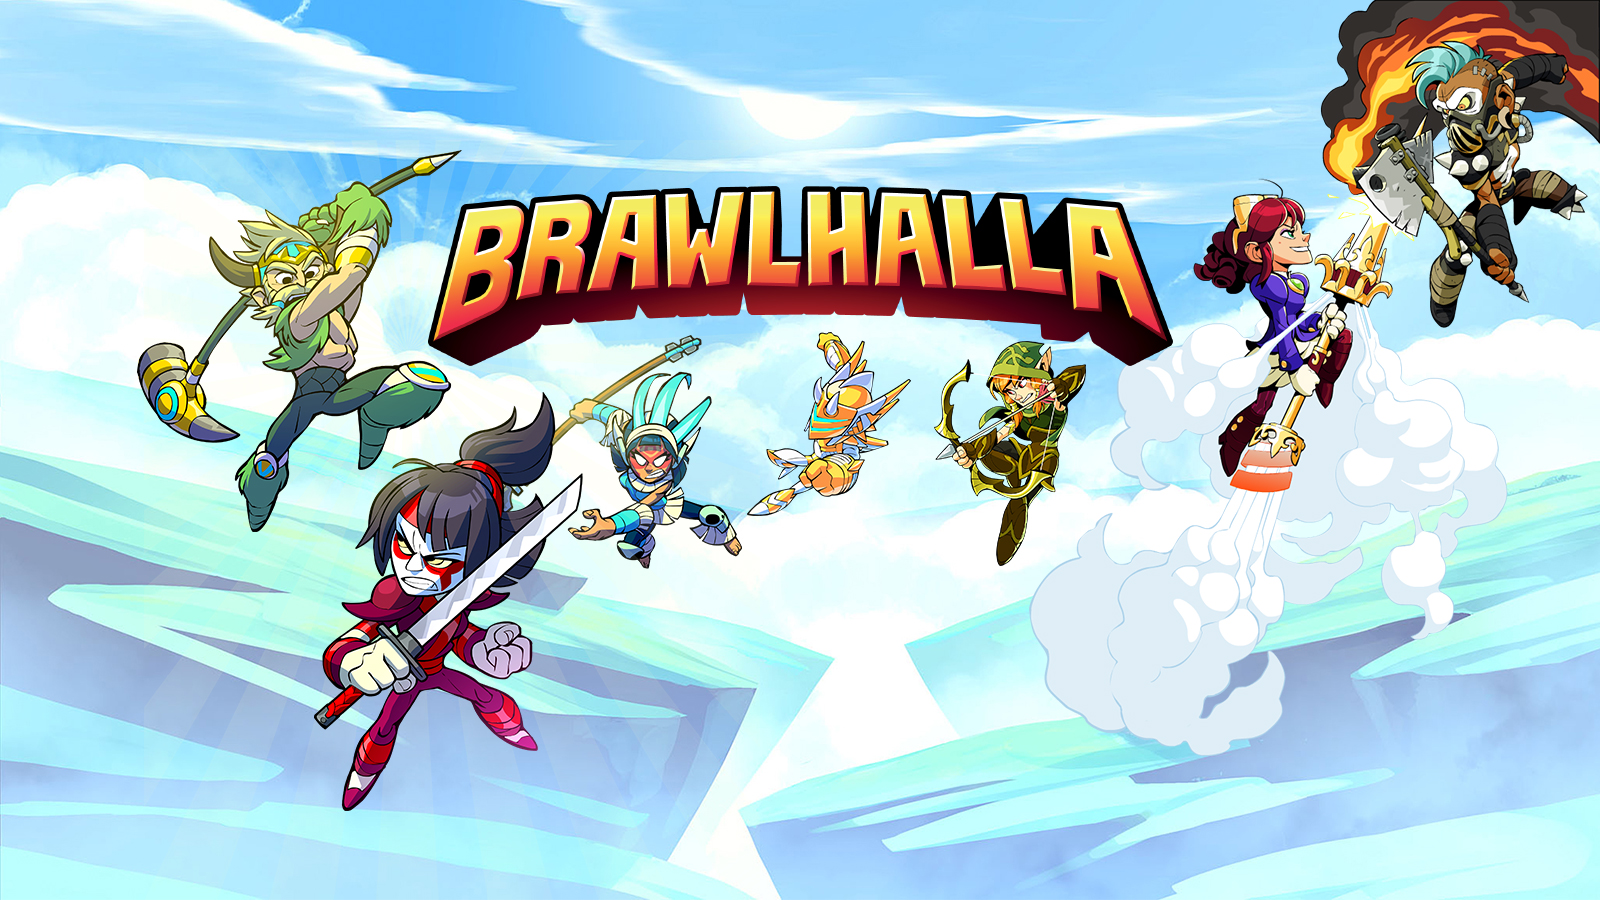 Brawlhalla Hack Money Free Coins Codes Cheats 2019